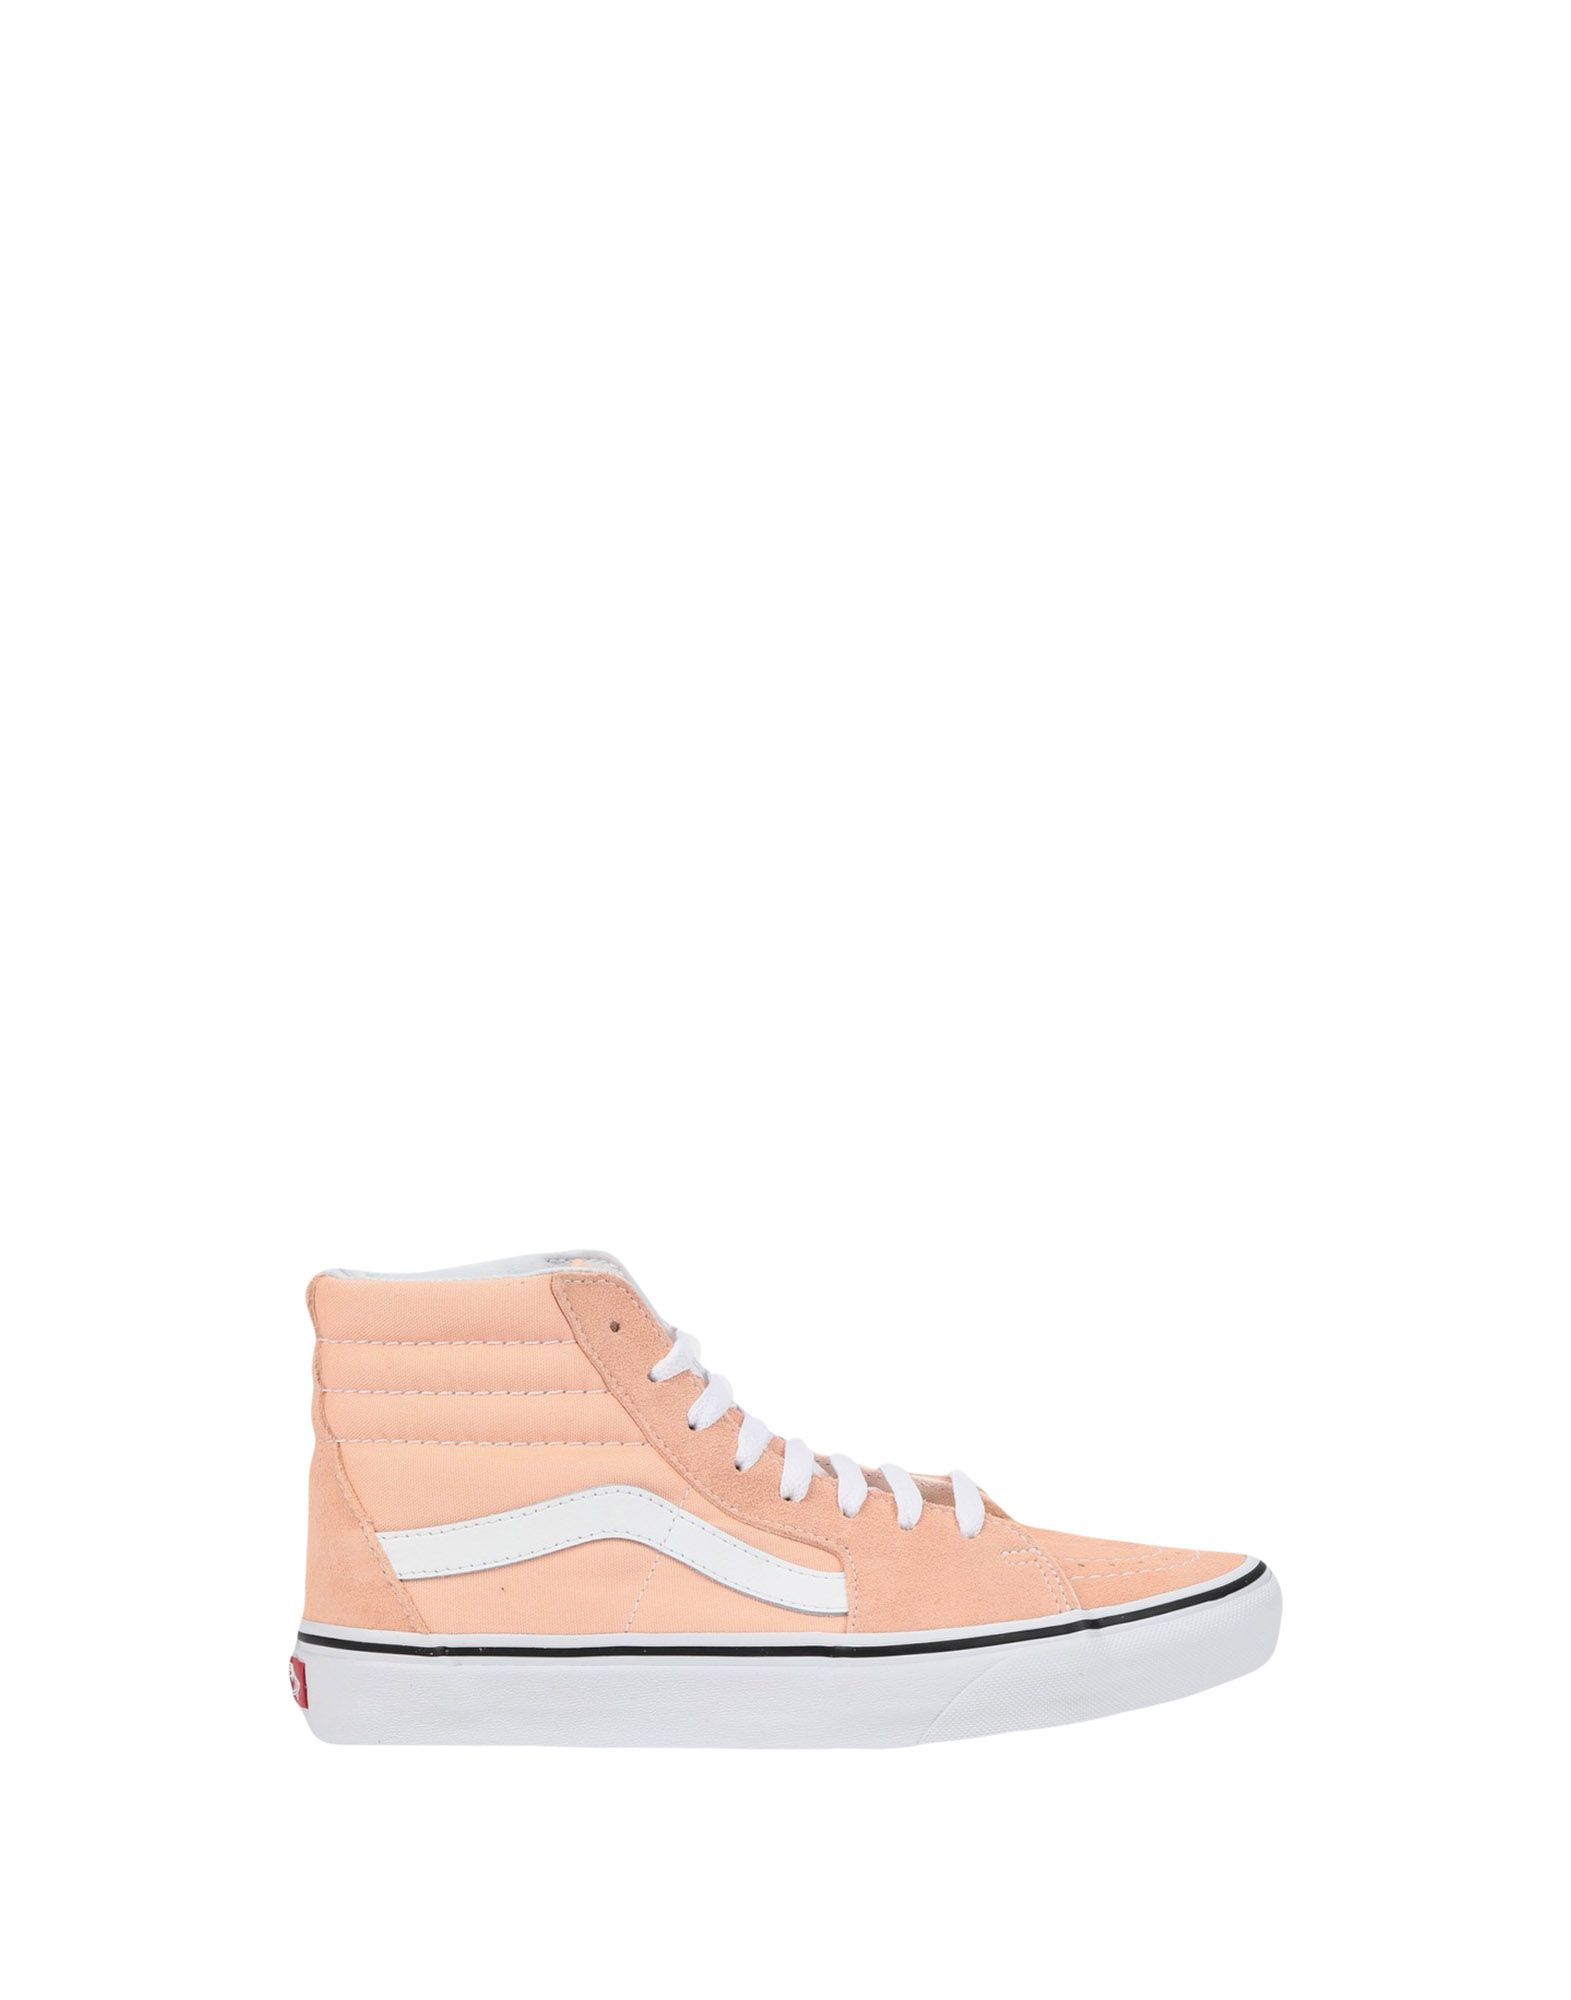 Vans Ua Sk8-Hi - Sneakers - Women Vans United Sneakers online on  United Vans Kingdom - 11551958QW 5f8d84